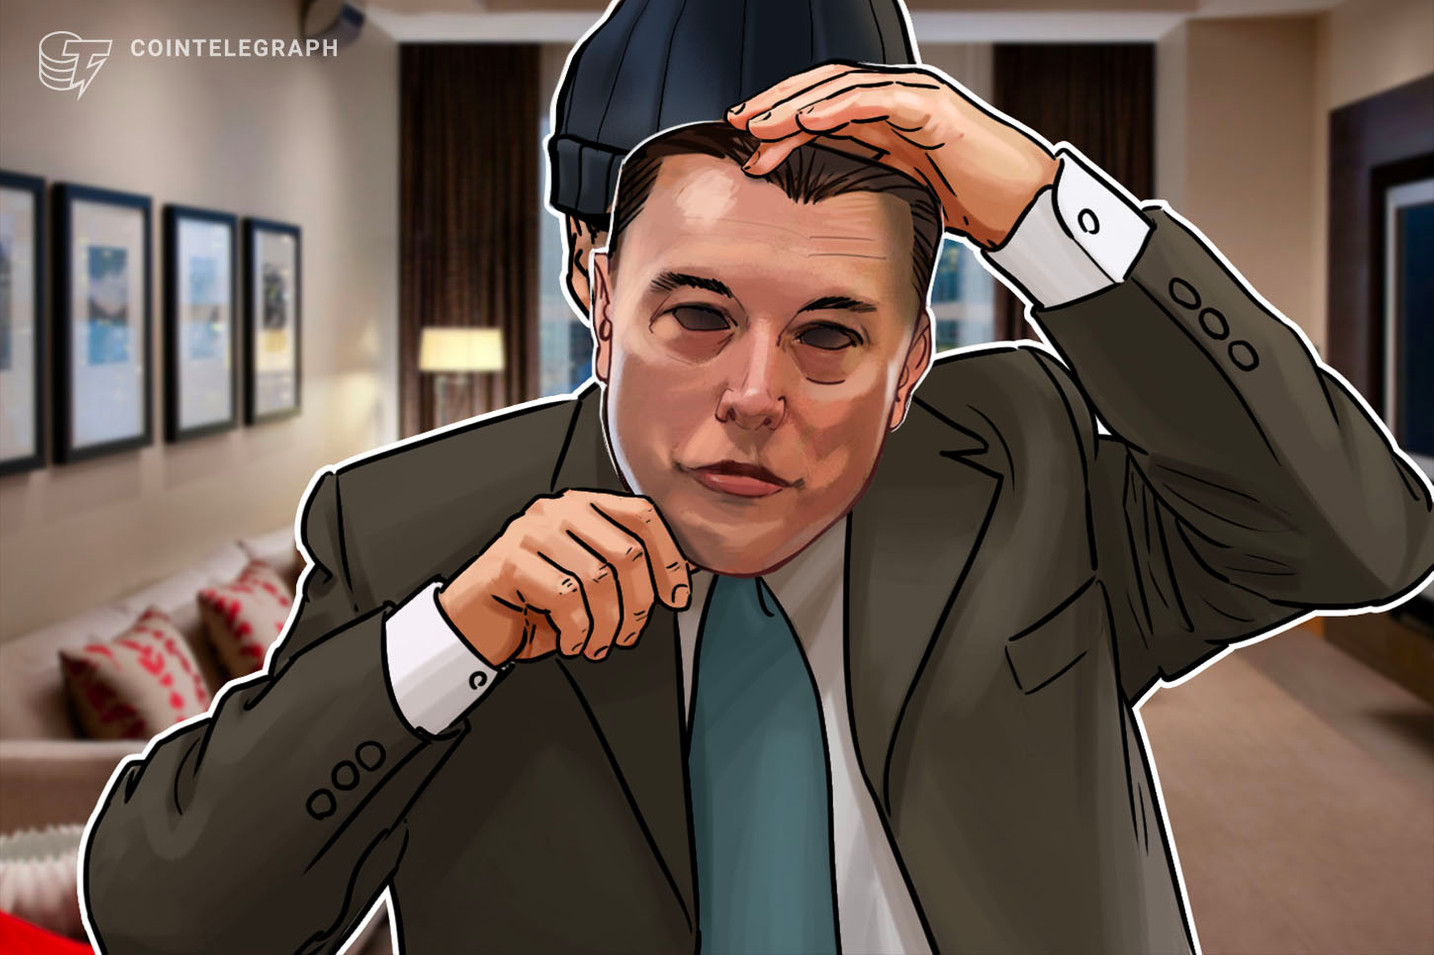 Fake Elon Musk Accounts on Twitter Promote Bitcoin Scams, One Collects $170K